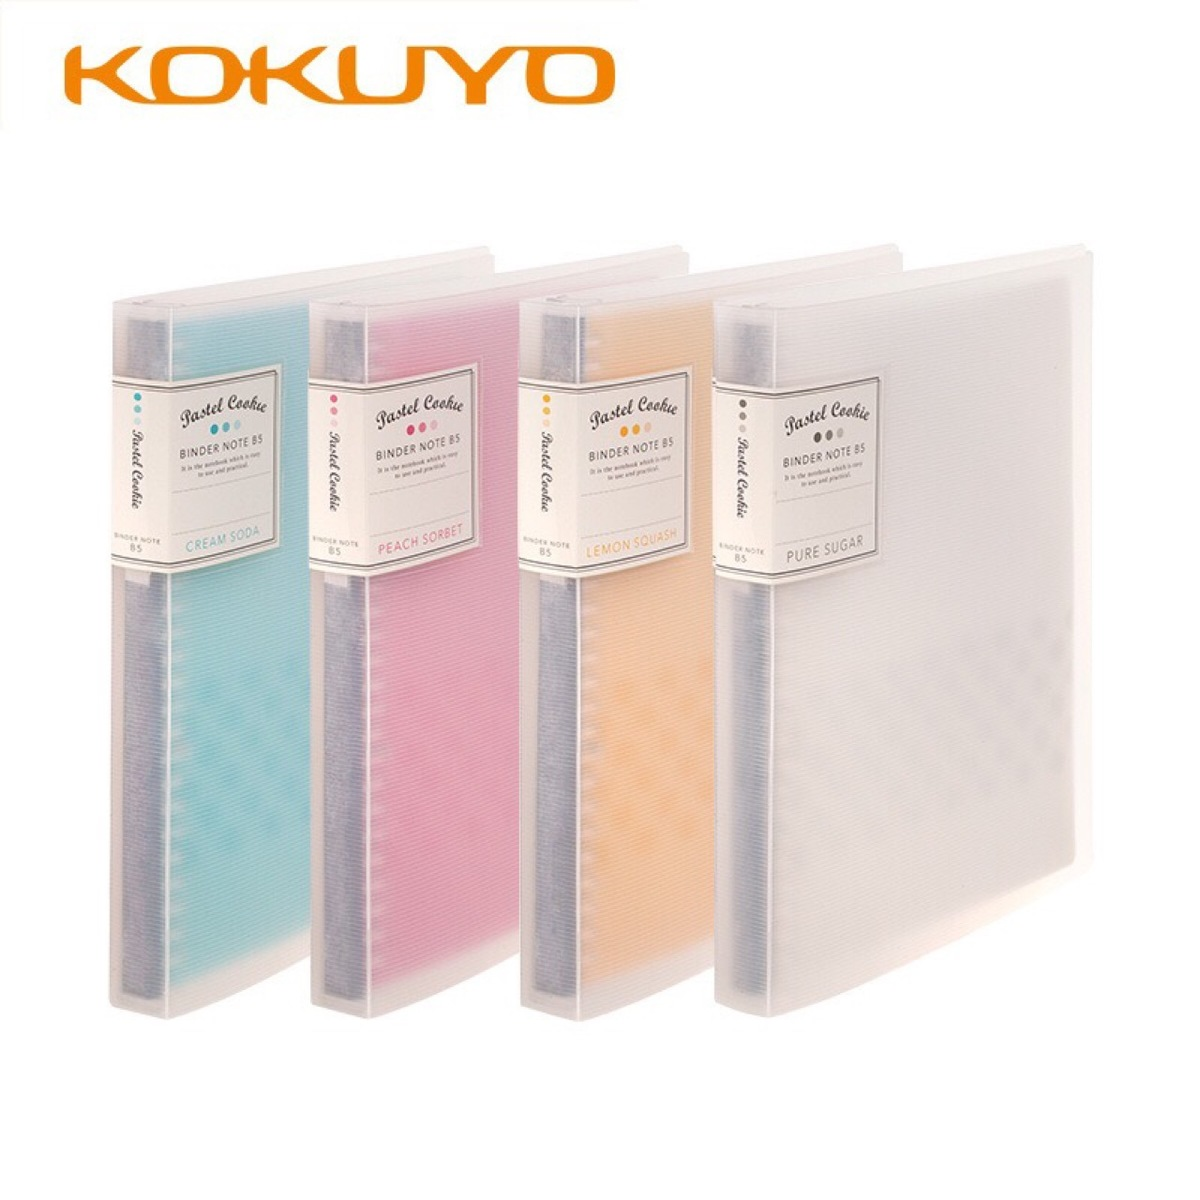 KOKUYO A5 B5 Removable Loose Leaf Notebook Refill Spiral Binder Planner Inner Page Inside Paper Dairy Weekly Monthly Plan Line kokuyo hotrock binding notepad soft copy a5 80wcn n1081 page 7